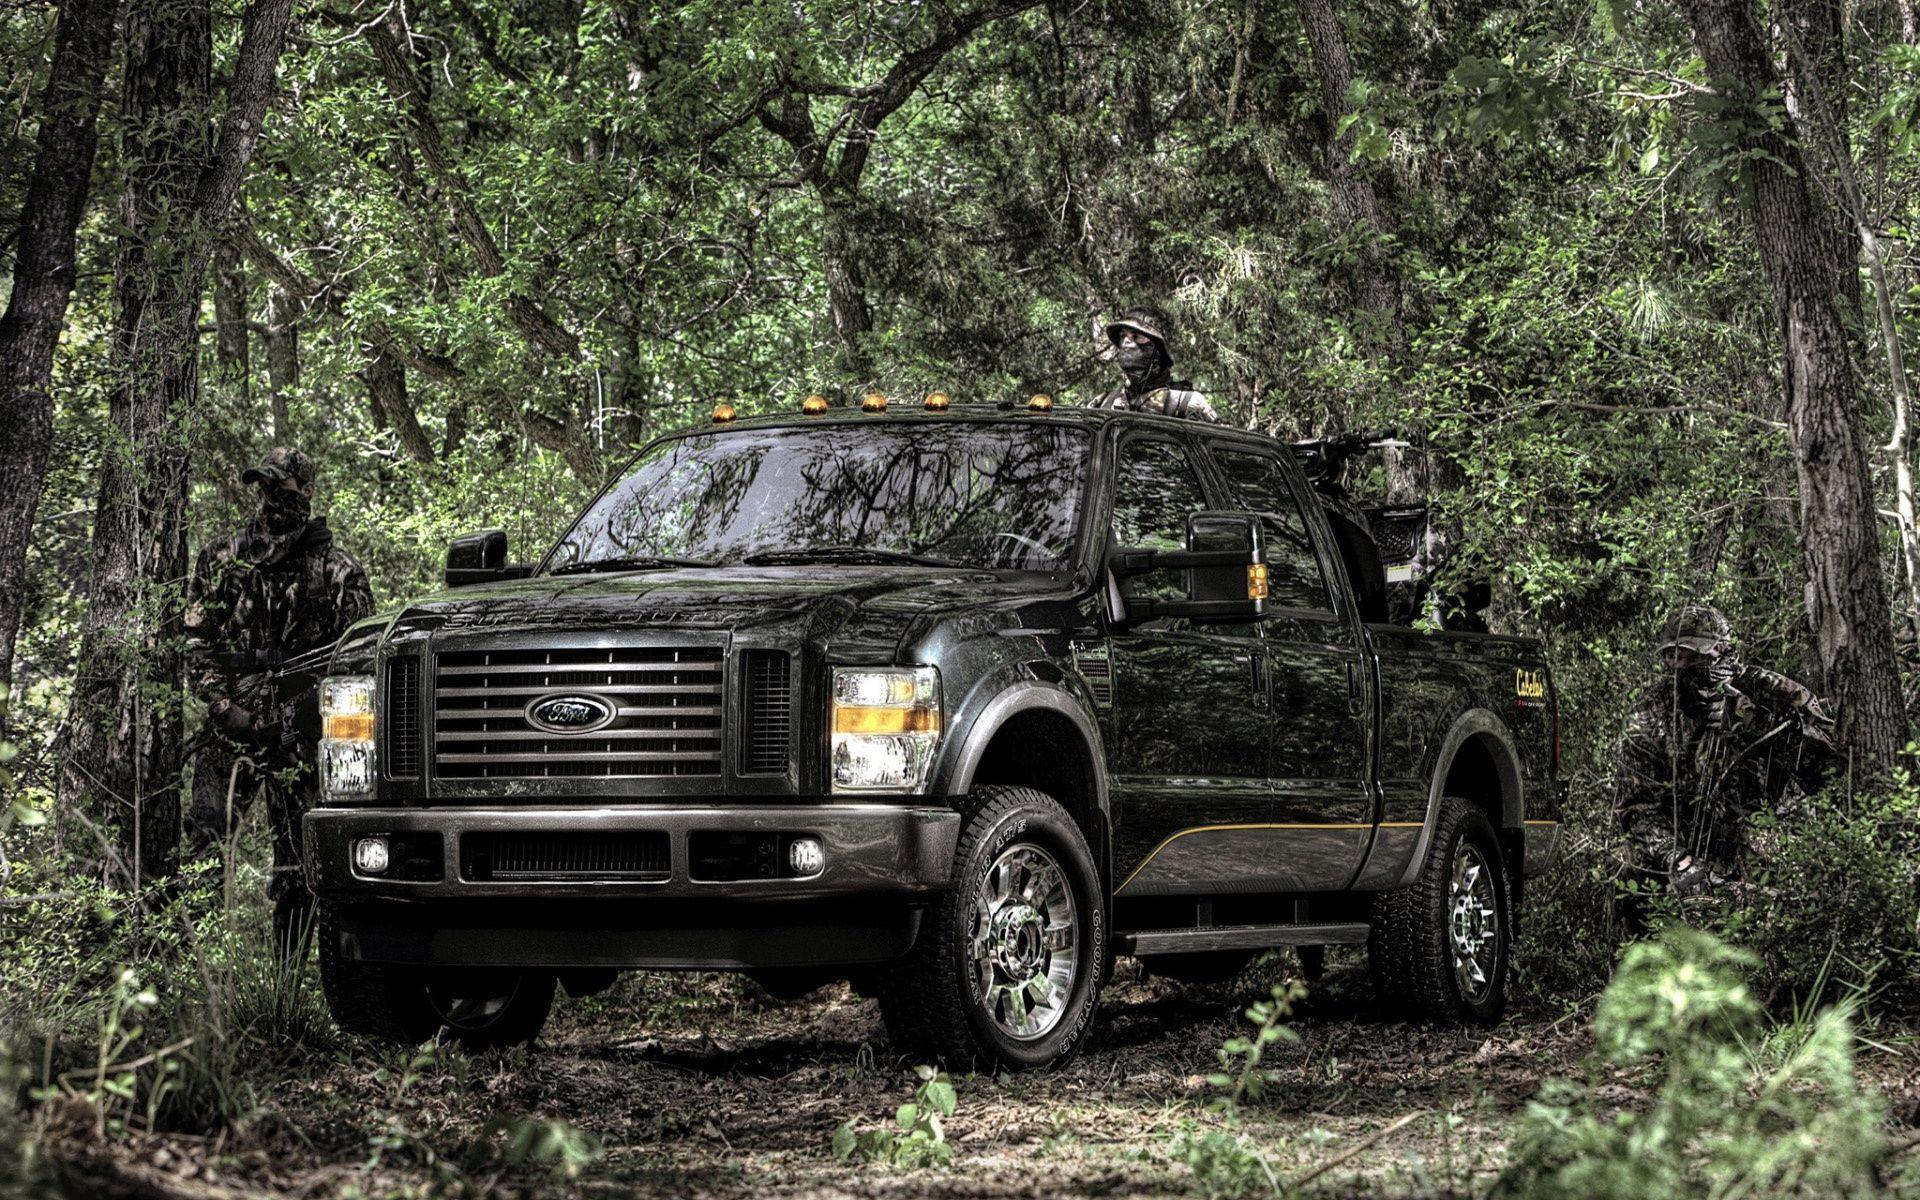 Ford F350 Wallpaper (27+ images) on Genchi.info